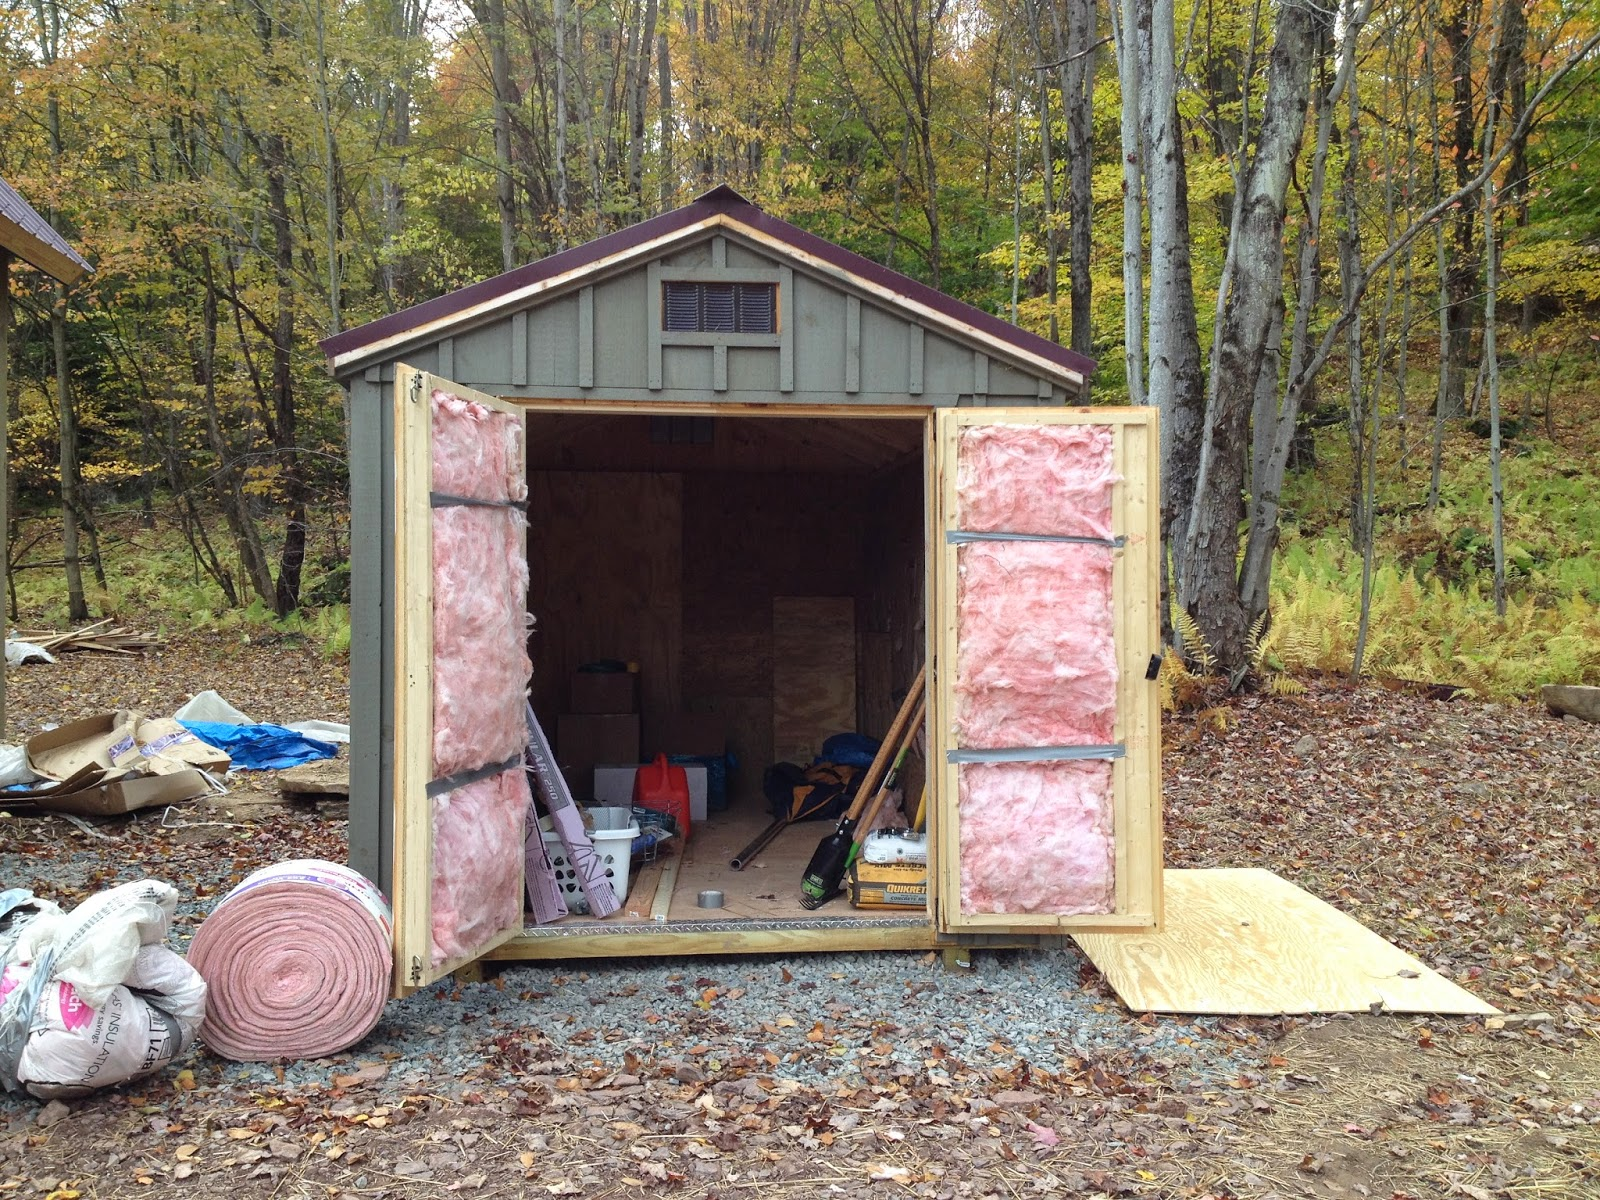 We use leftover insulation scraps to give the Amishmade shed some